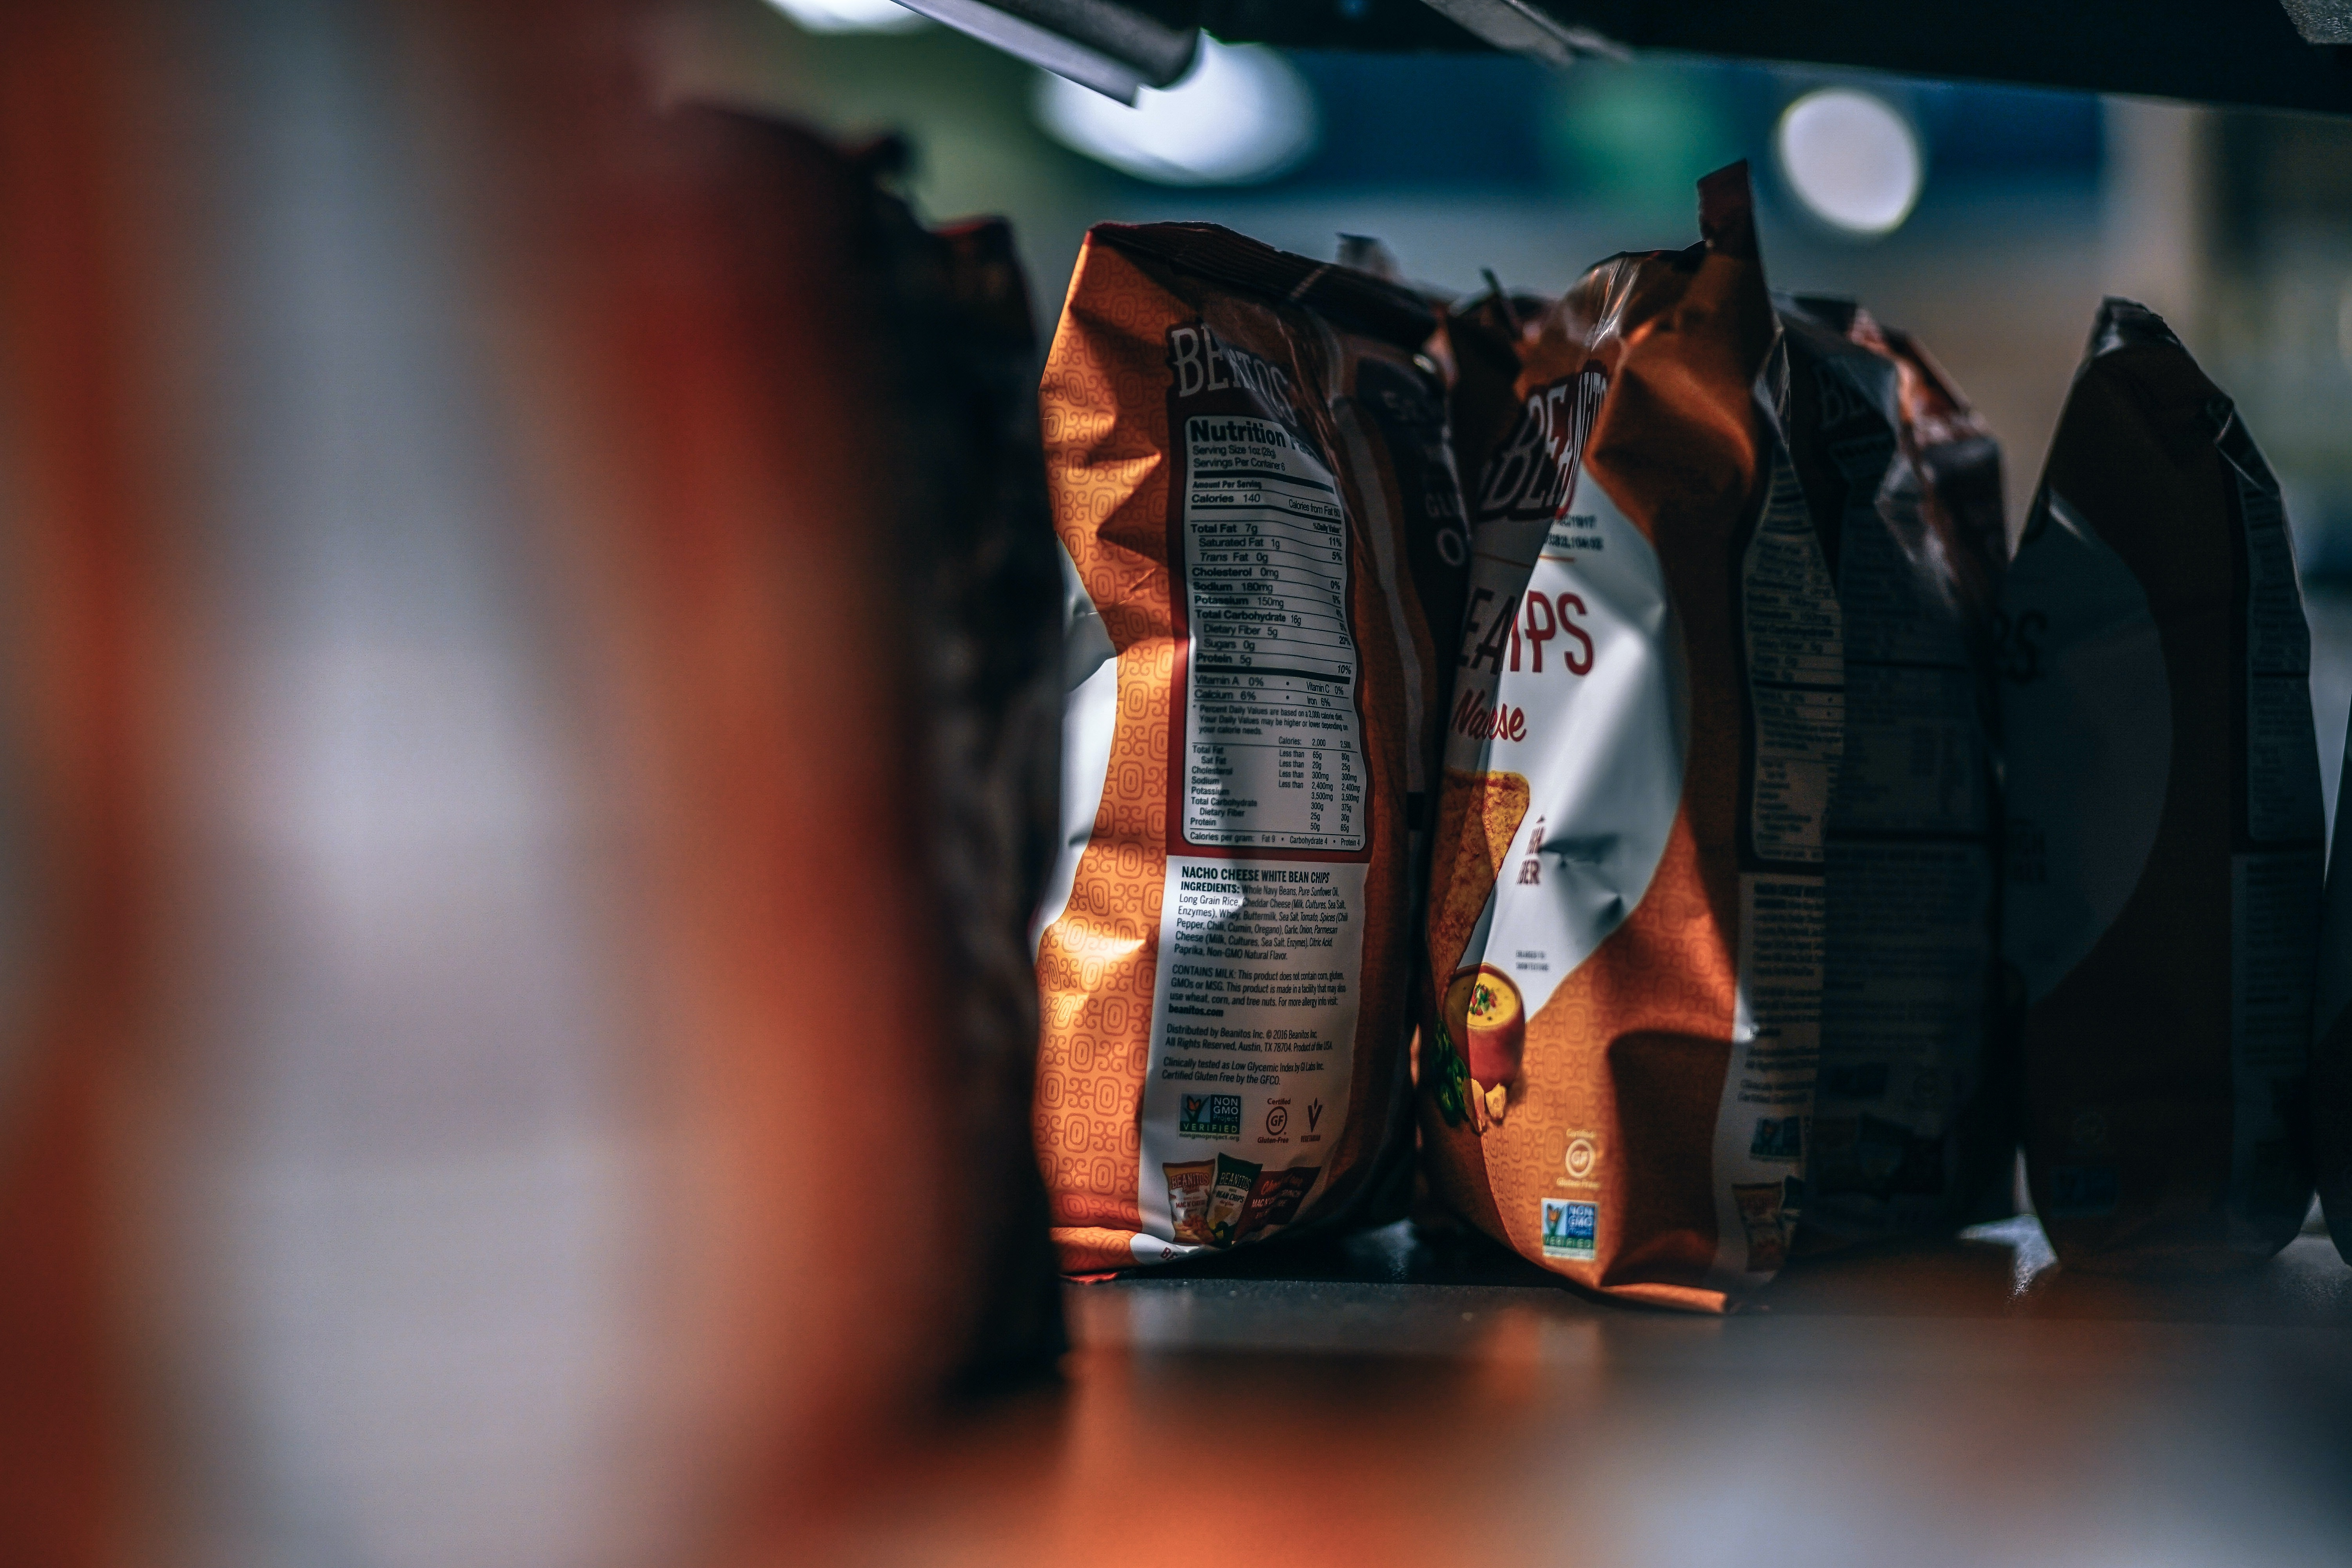 selective focus photography of chips bag